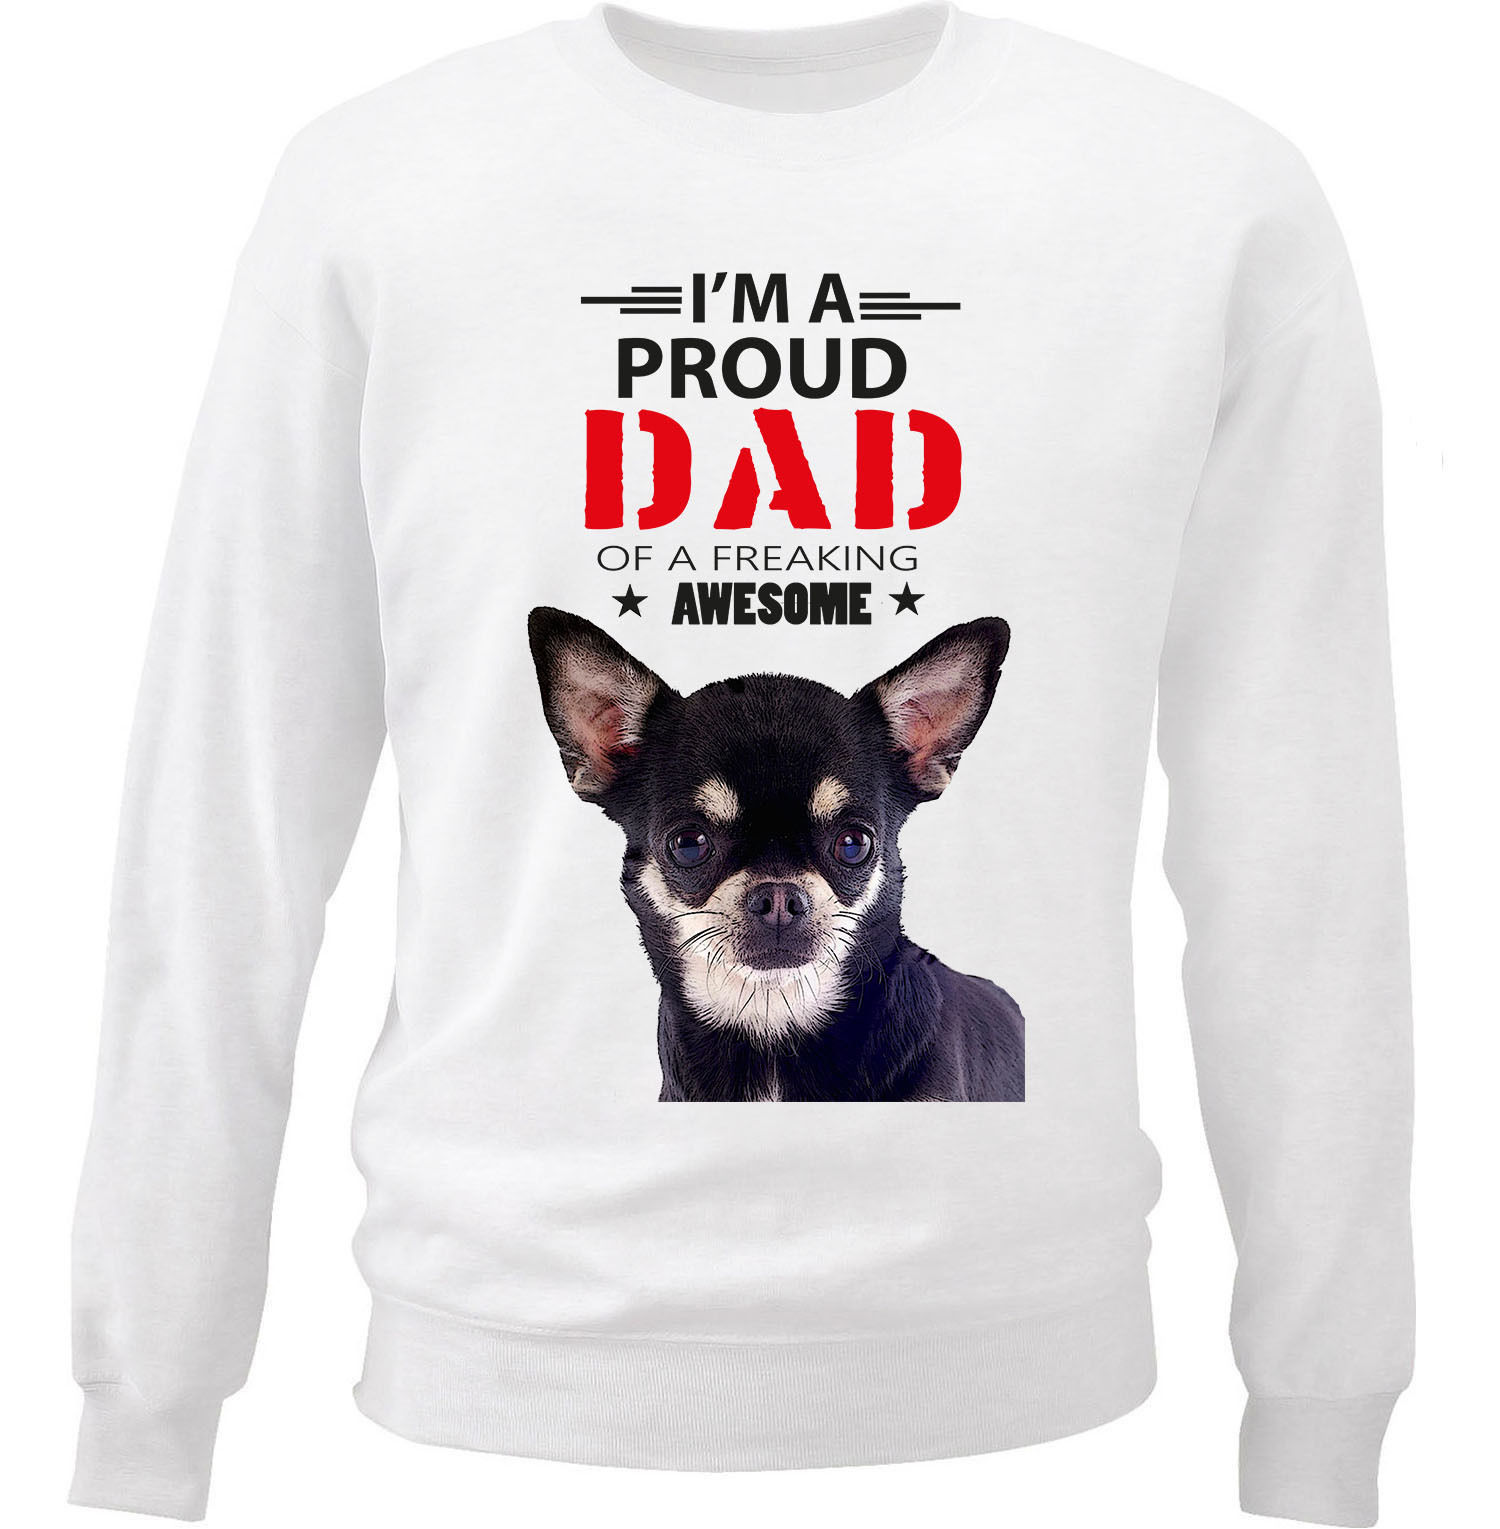 CHIHUAHUA BLACK PUPPY - IM A PROUD DAD - NEW WHITE COTTON SWEATSHIRT